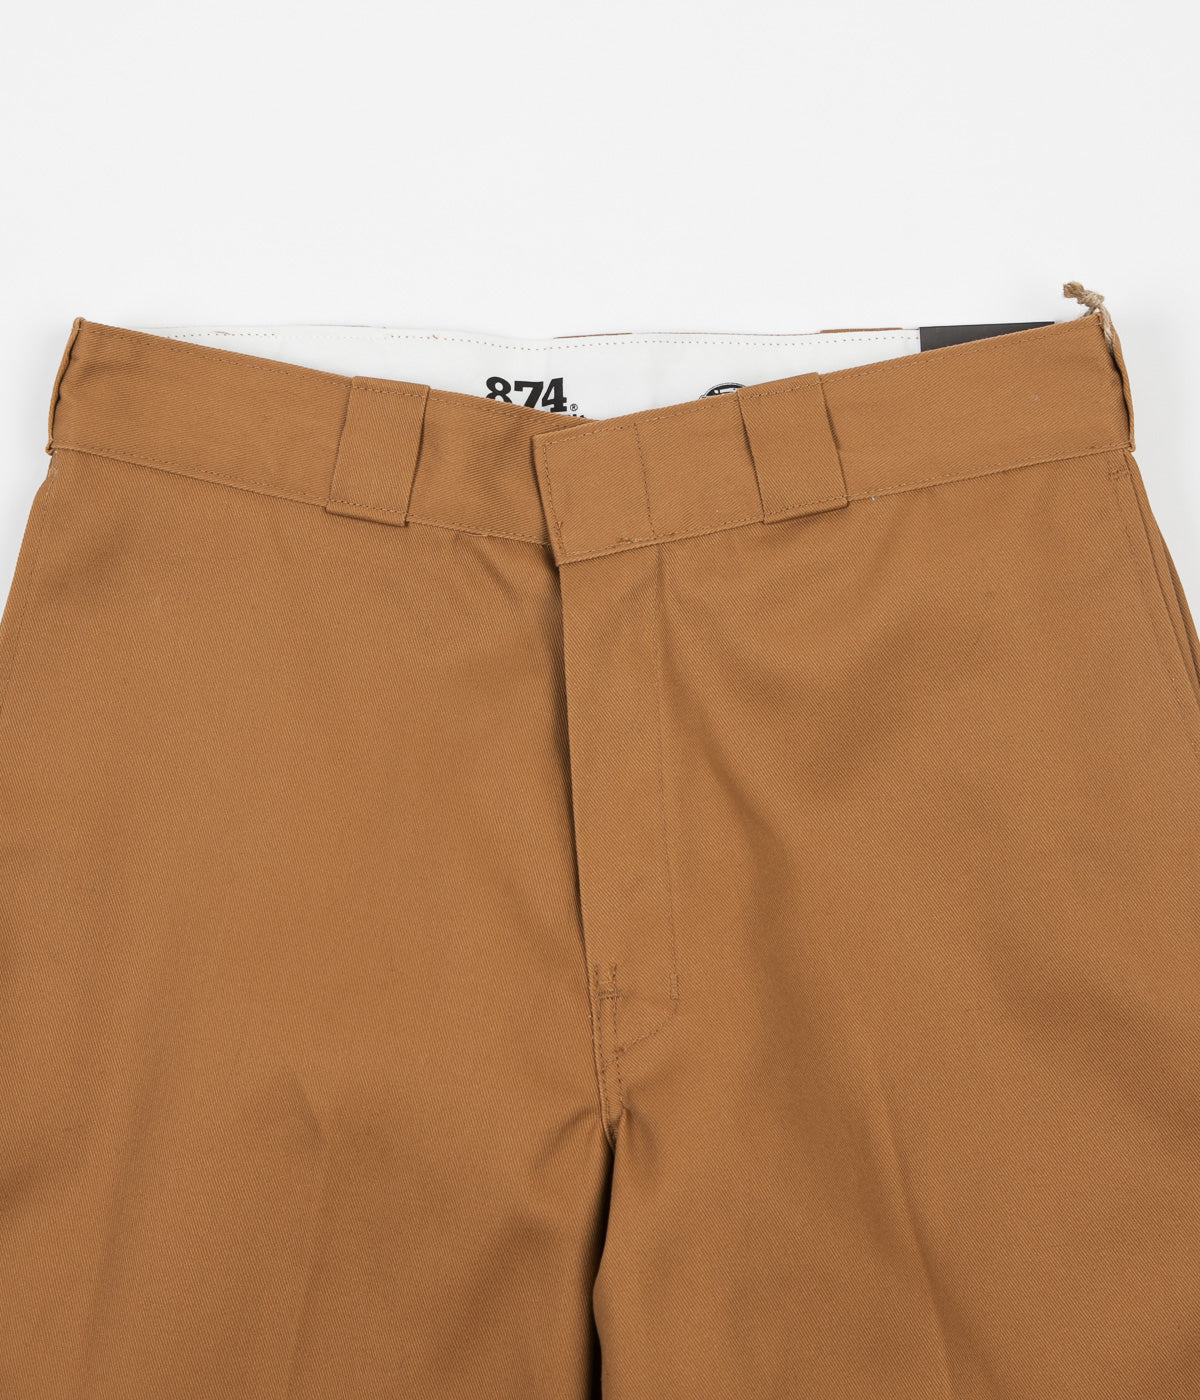 Dickies Original 874 Work Trousers - Brown Duck